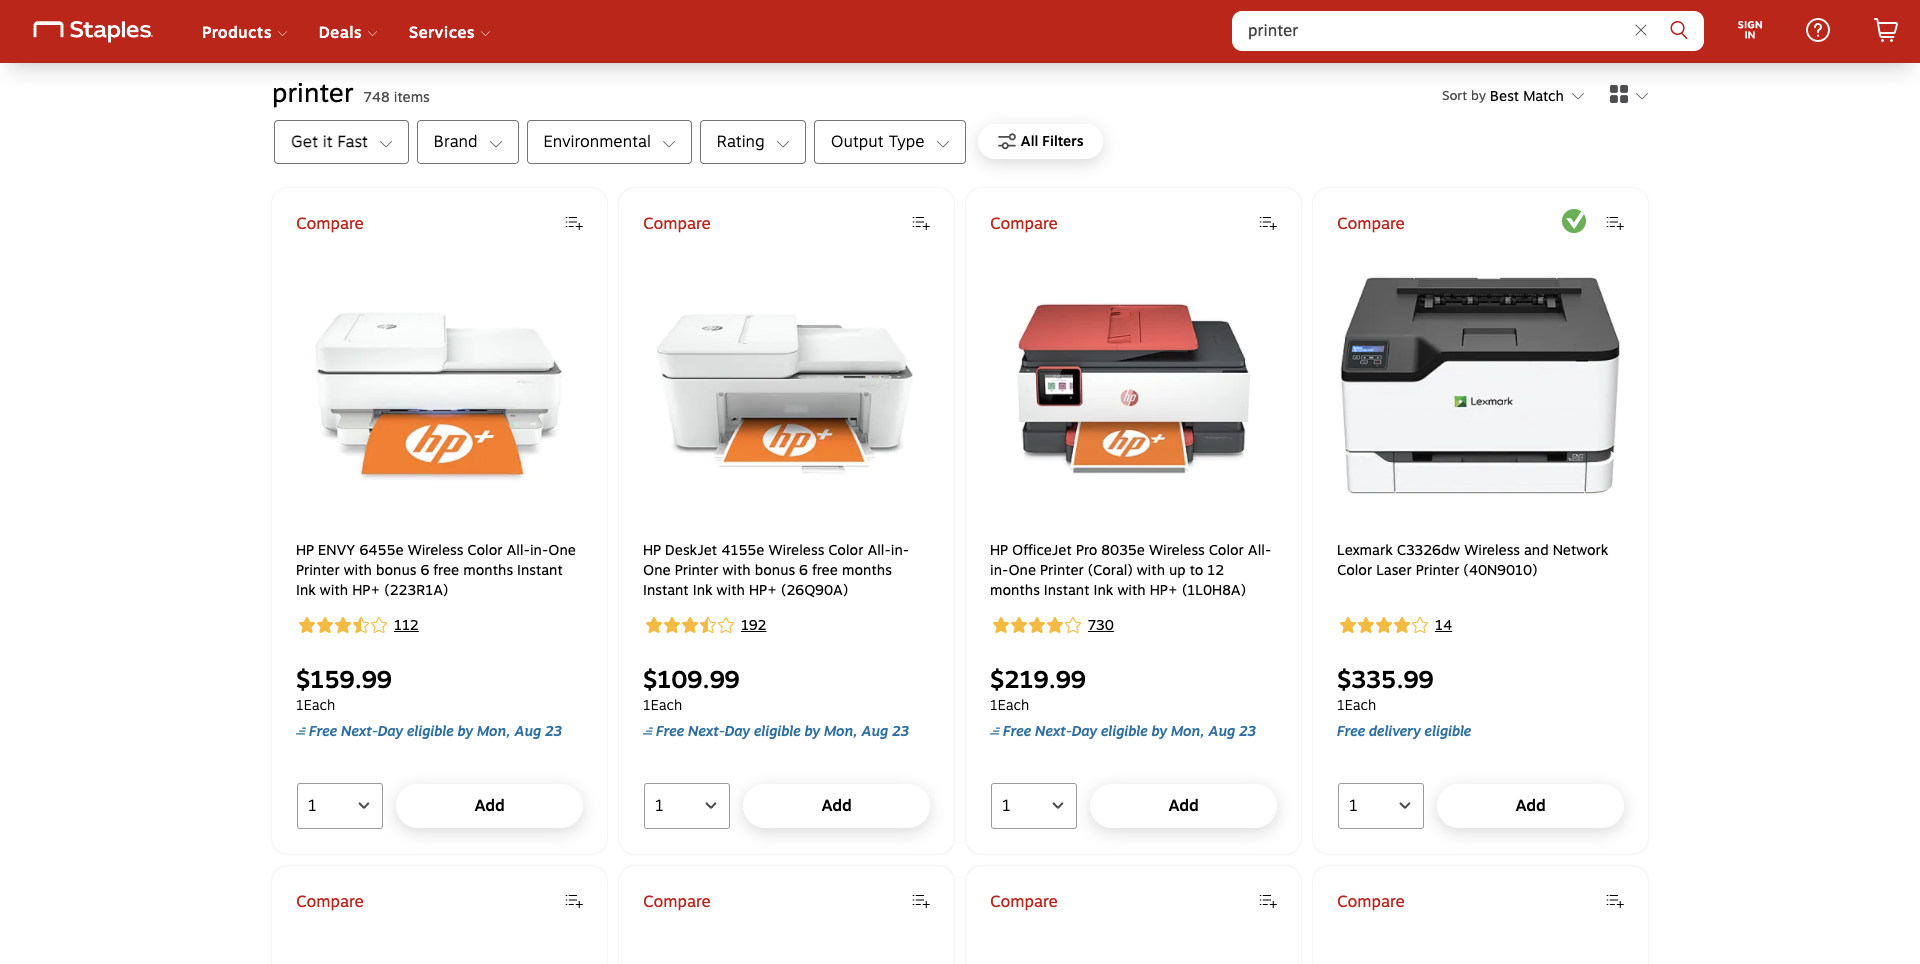 Example of search results with CTA by Staples